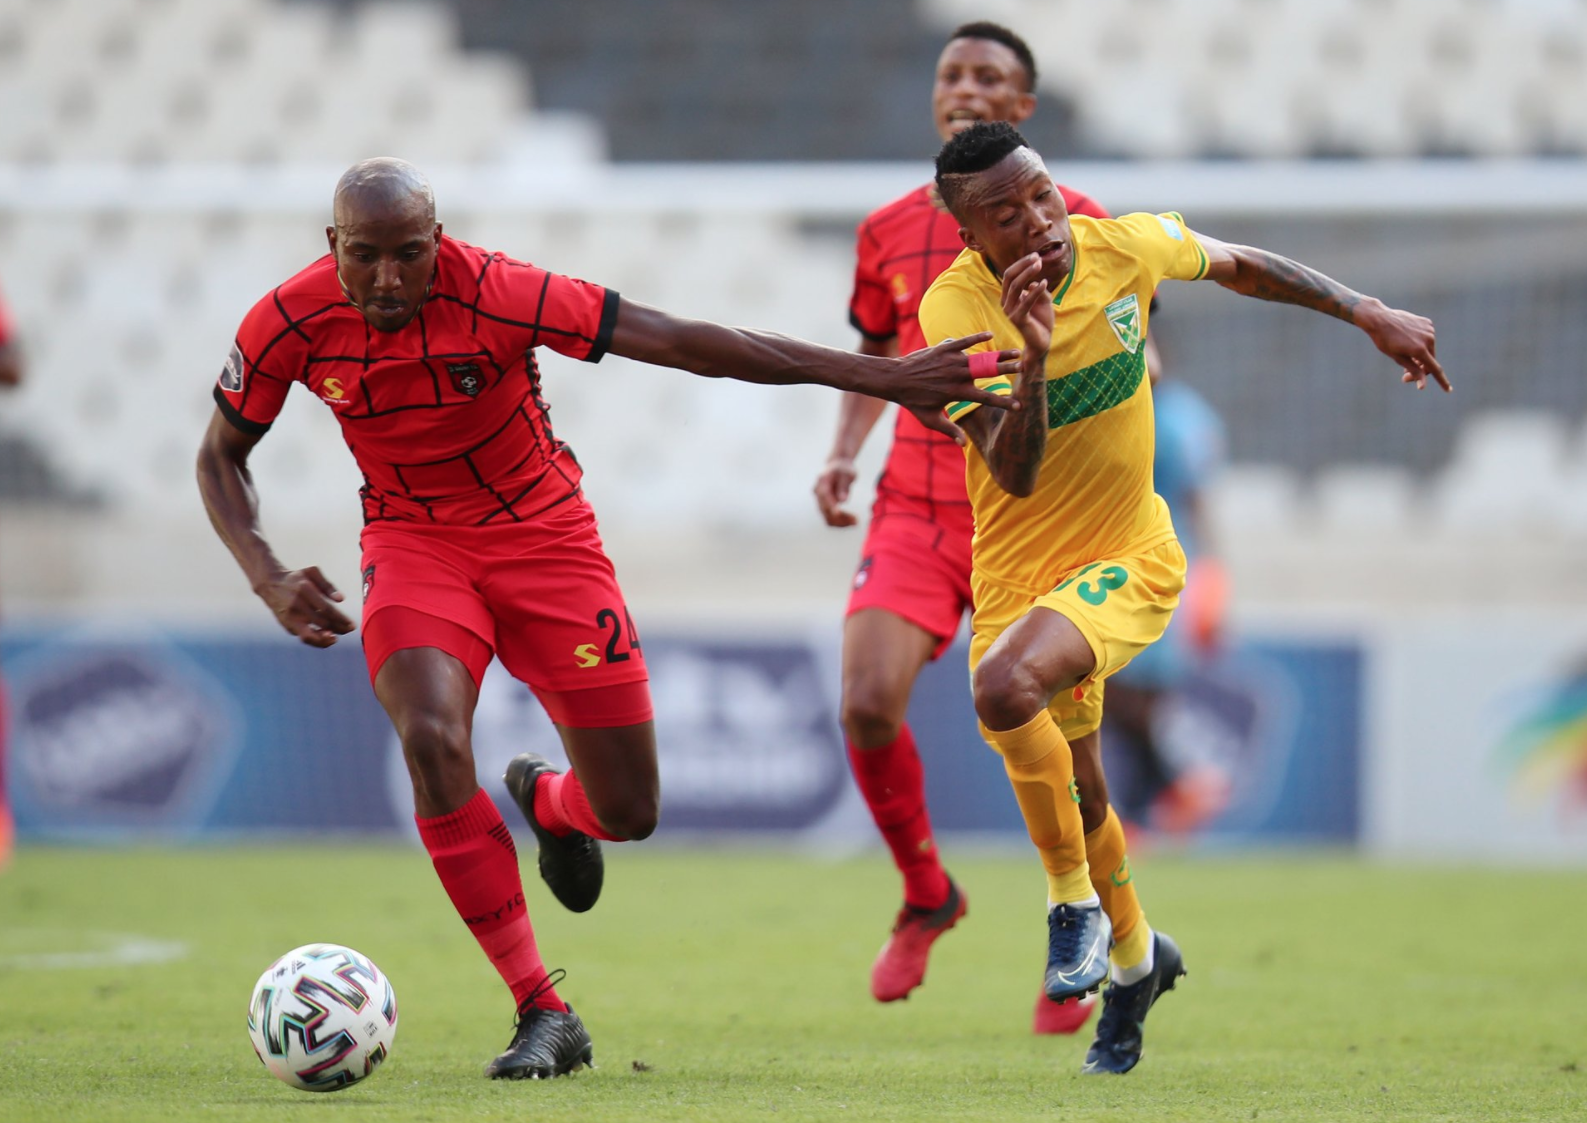 TS Galaxy and Golden Arrows played to a 1-1 draw